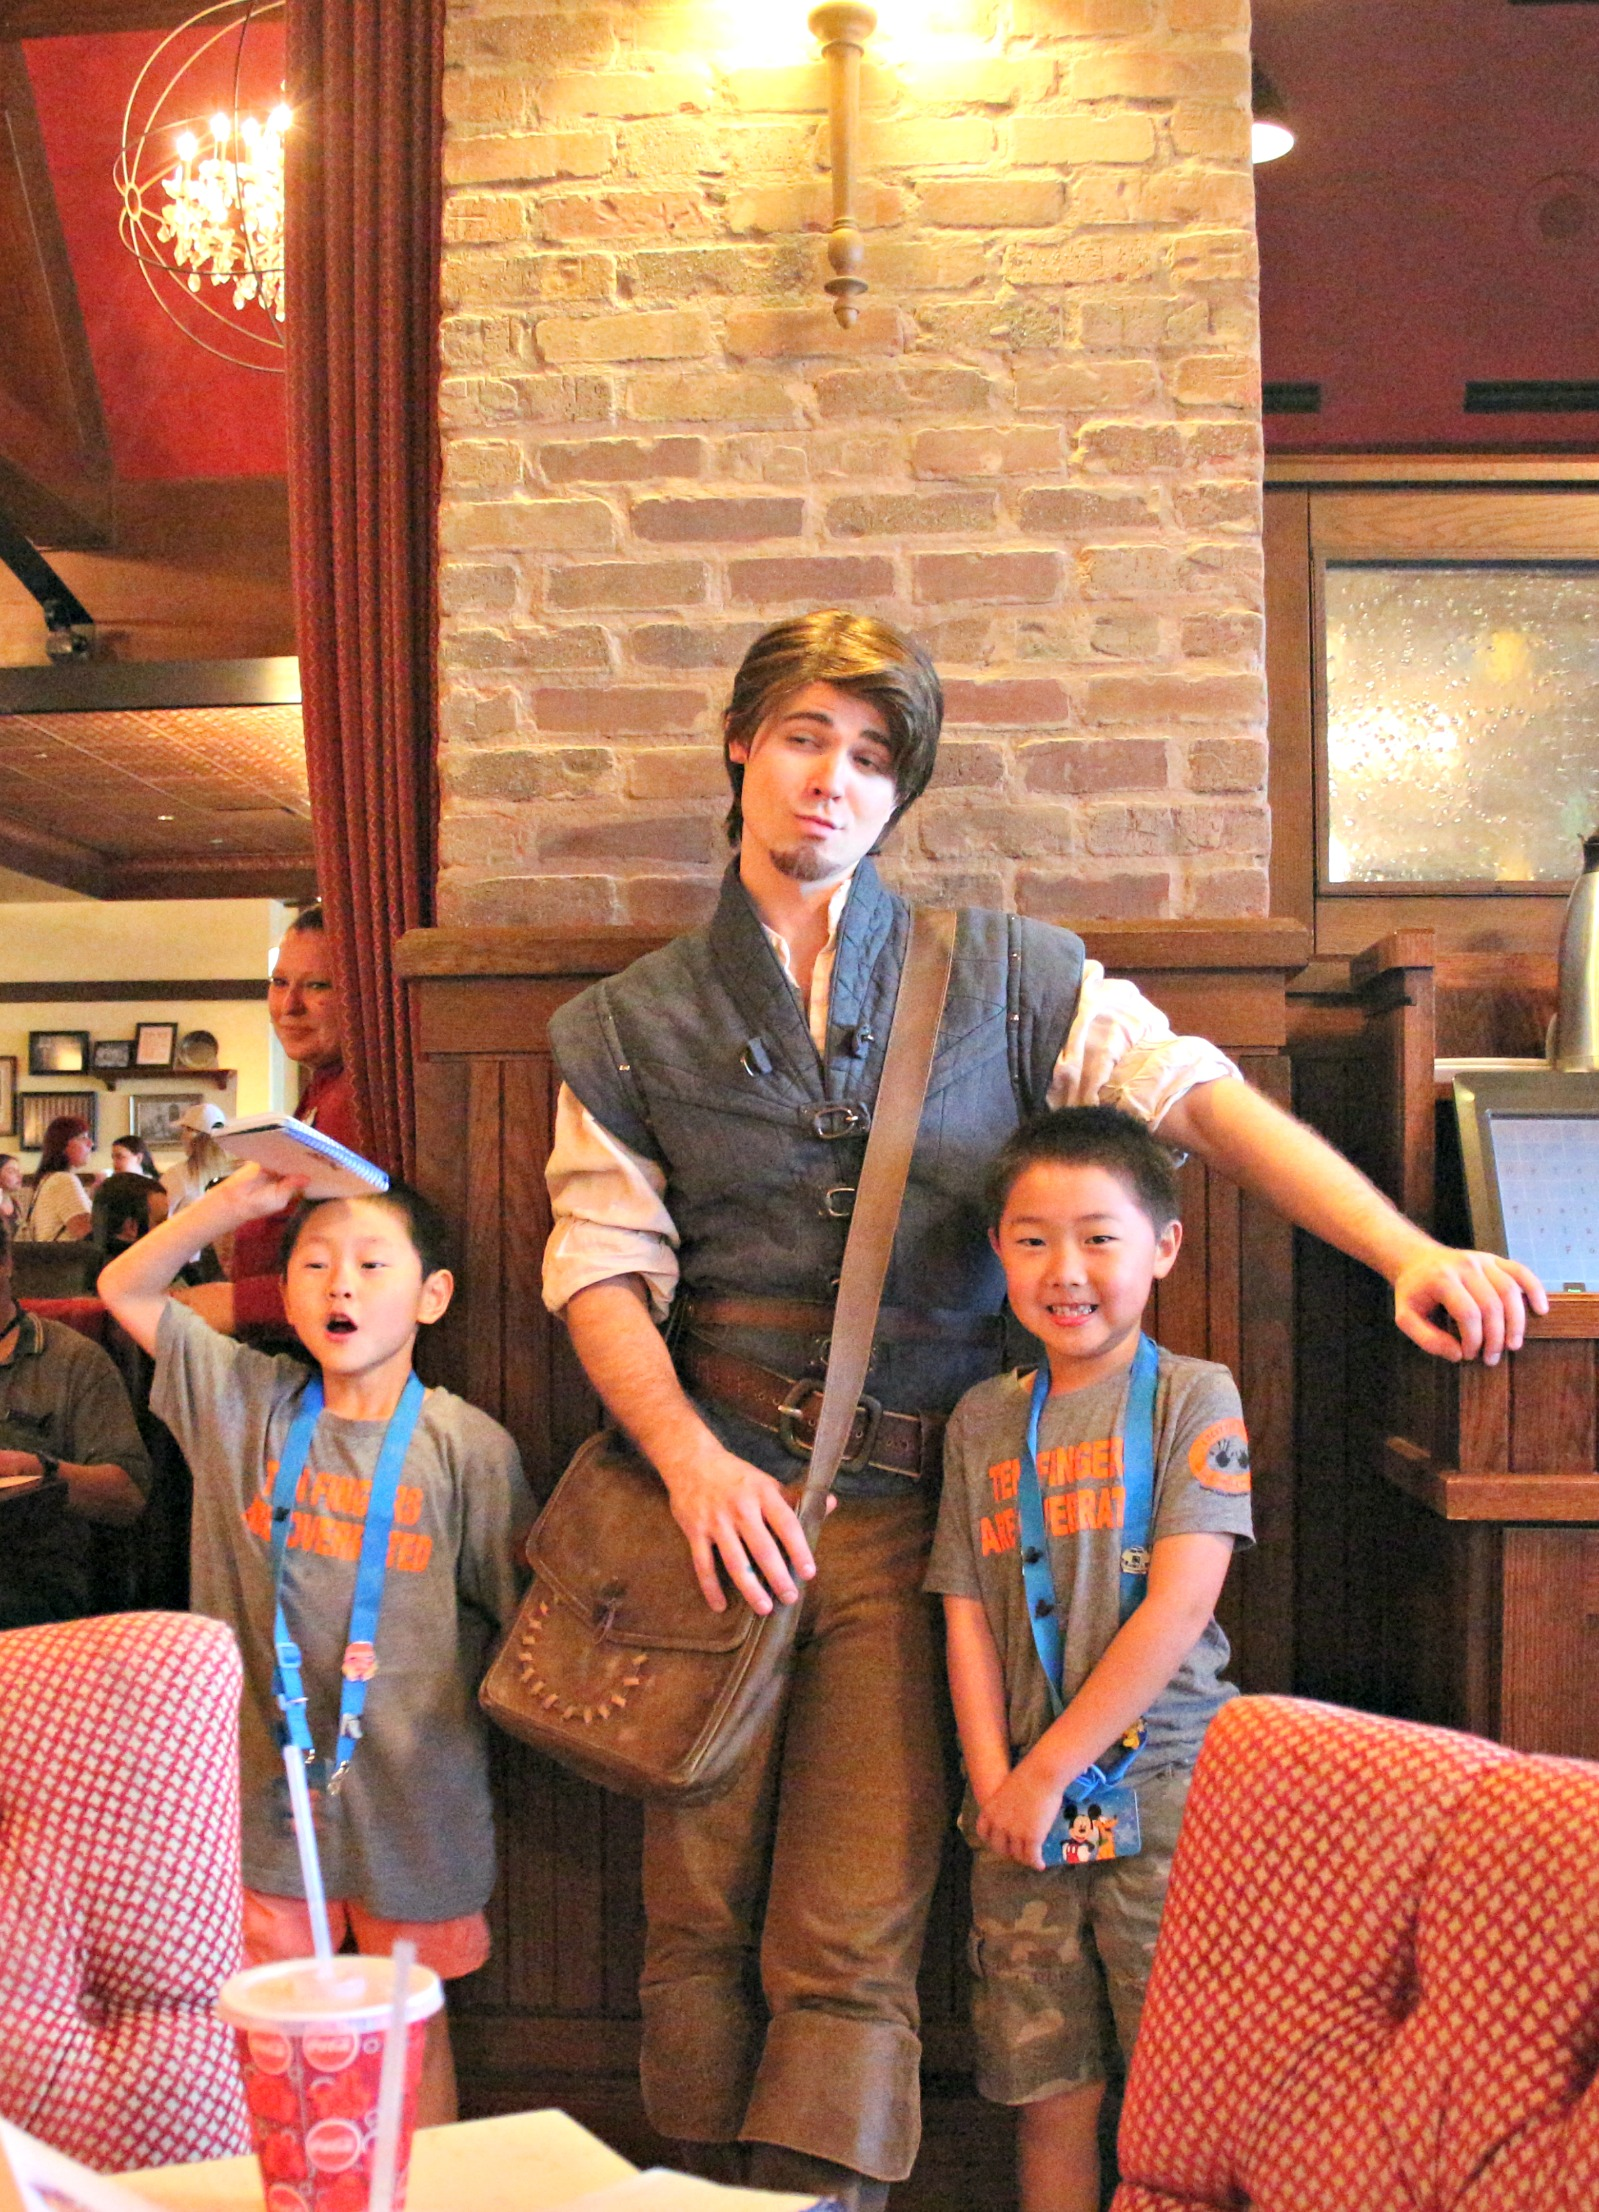 The Bon Voyage Adventure Breakfast at Trattoria al Forno is the only character meal where you can meet Disney princes. Well...Flynn Rider is a prince. I guess.